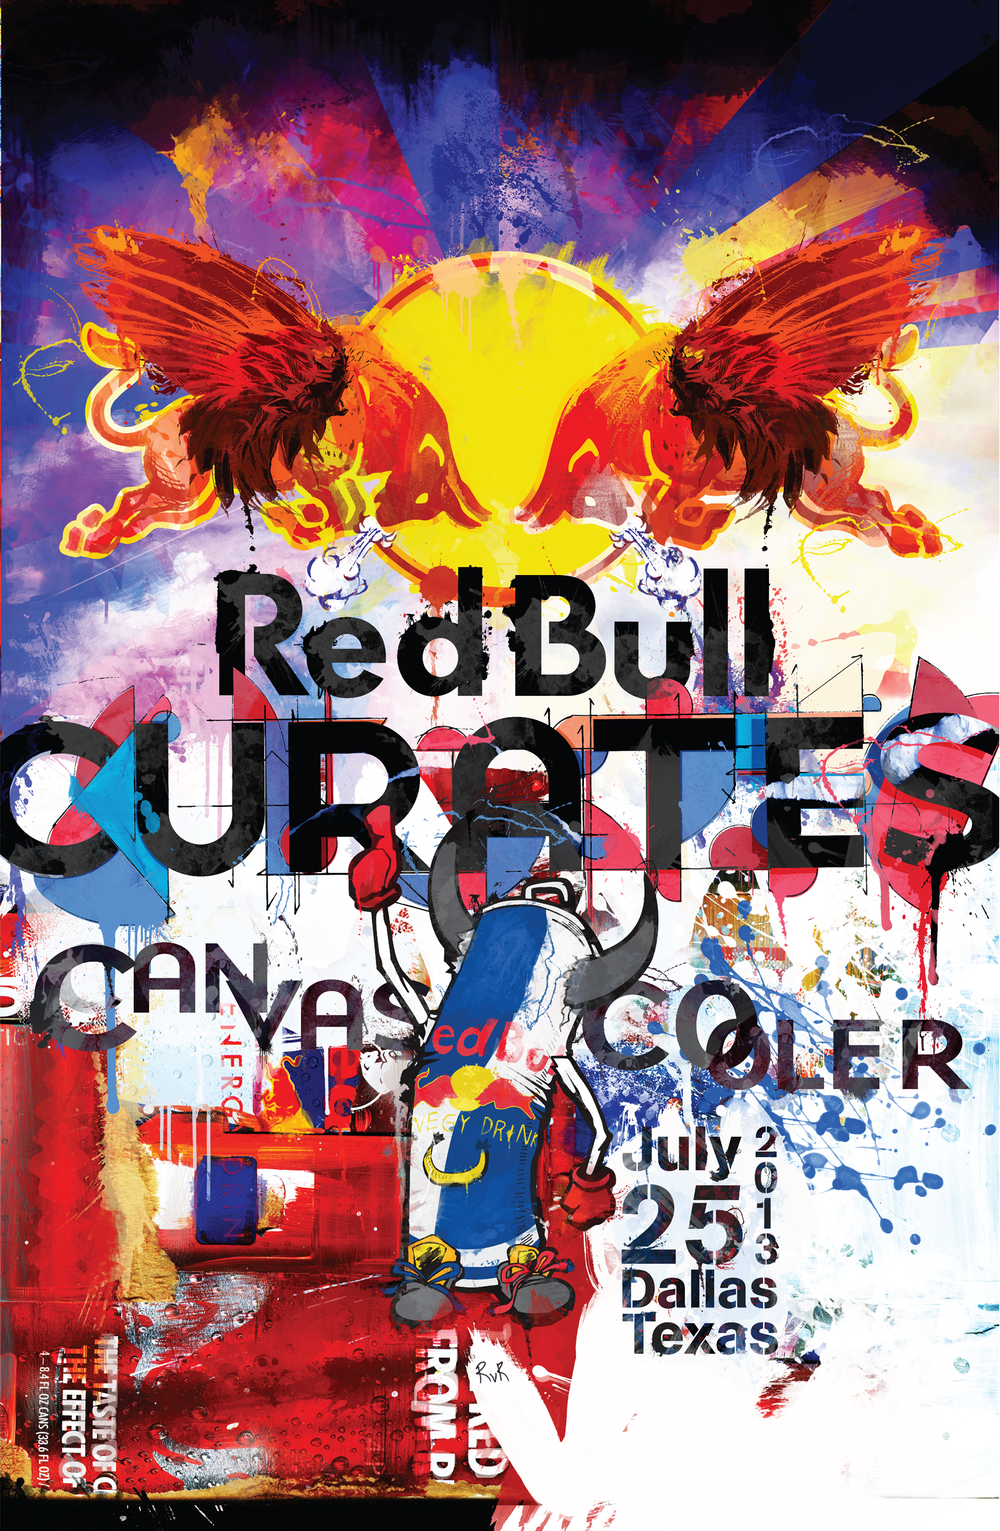 RED BULL CURATES THE CANVAS COOLER 2013 EVENT POSTERS (ILLUSTRATION AND DESIGN}